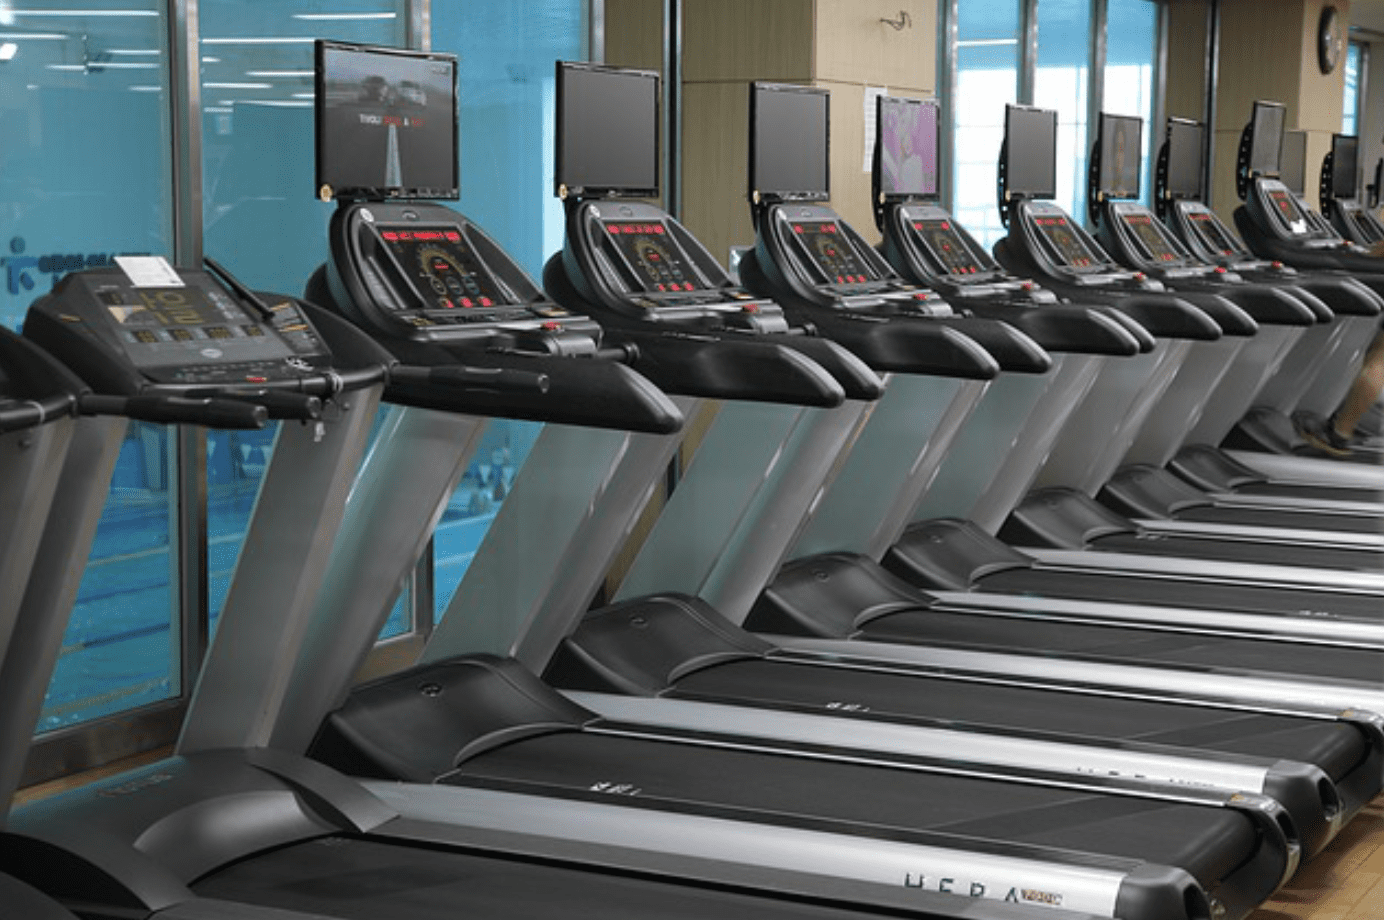 Choose a treadmill. Row of treadmills; image by milyoung23, via Pixabay.com.